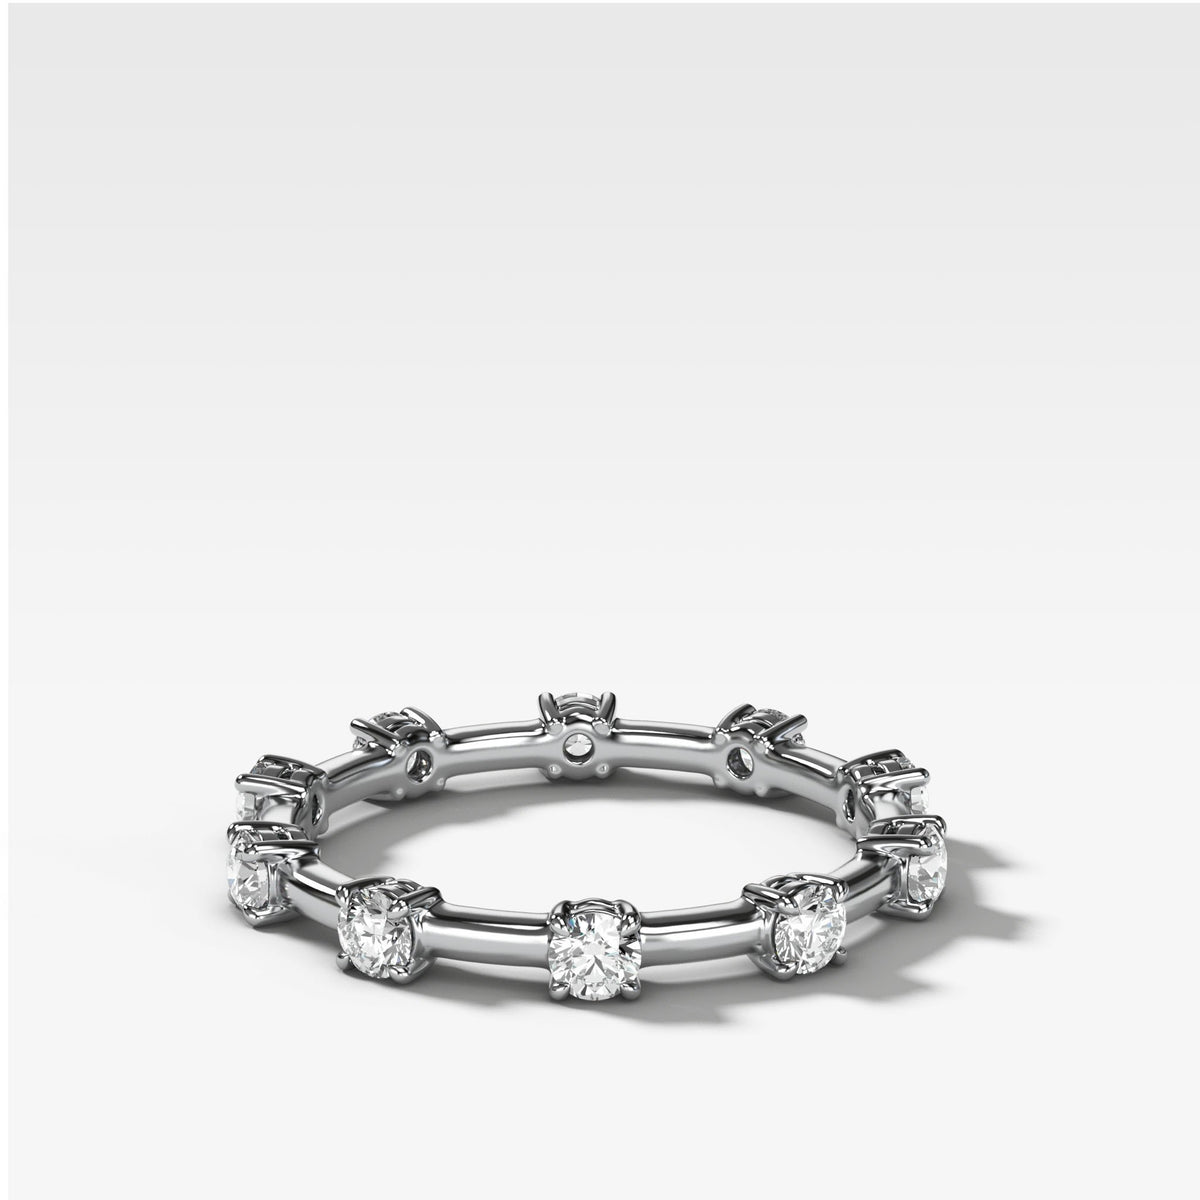 Claw Diamond Band: Spaced Eternity Band in White Gold by Good Stone